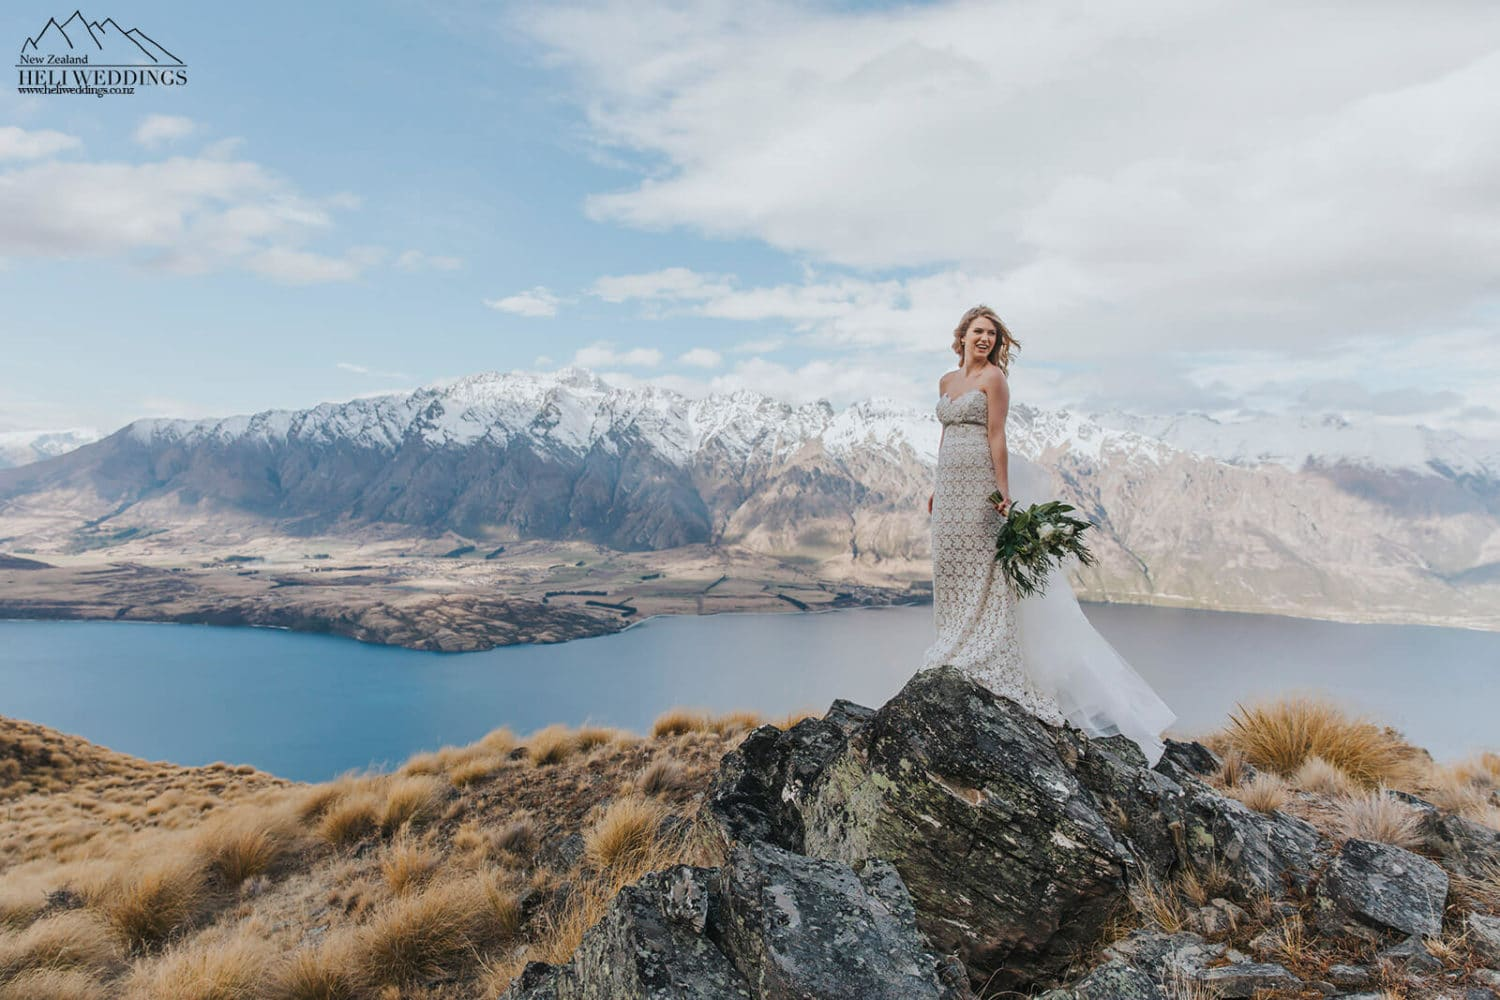 Queenstown Winter Wedding,Queenstown Wedding package with helicopter